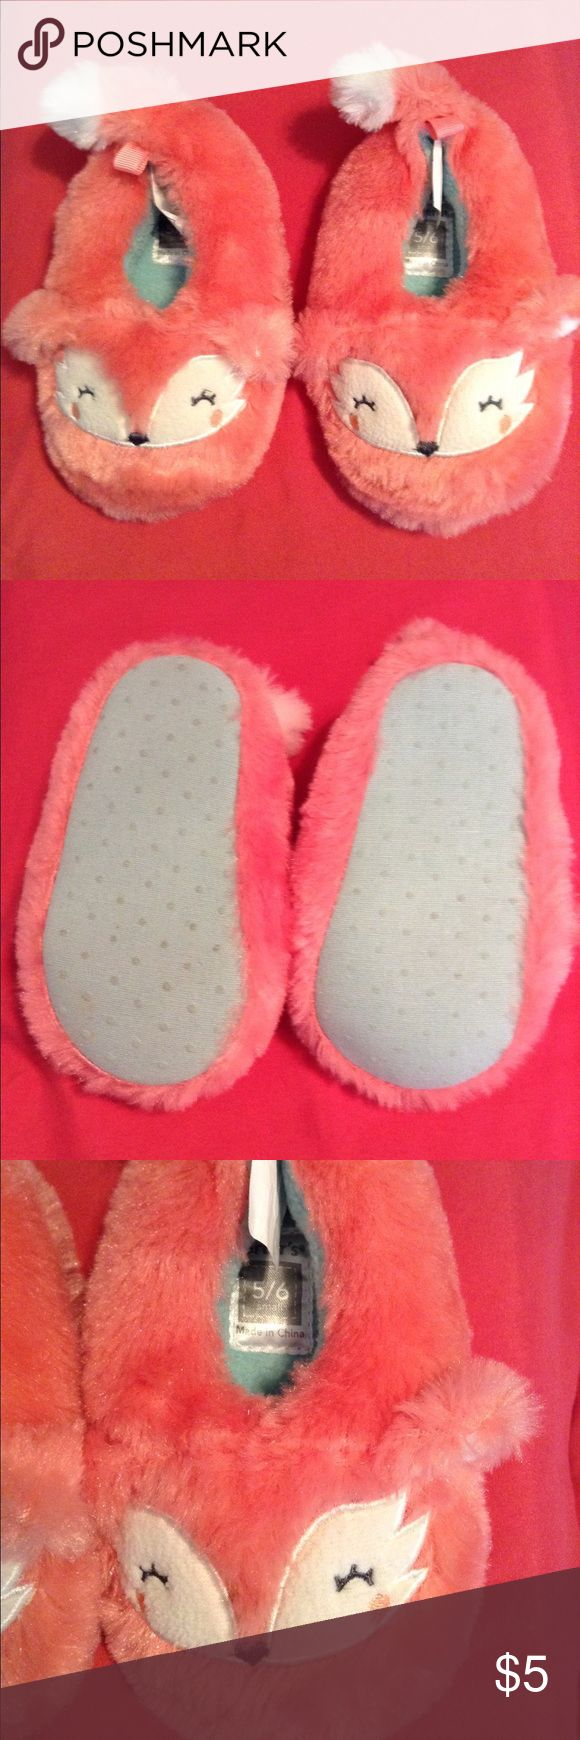 Furry fox slippers Cute toddler furry fox slippers size 5/6 they are pinkish orange Carter's Shoes Slippers